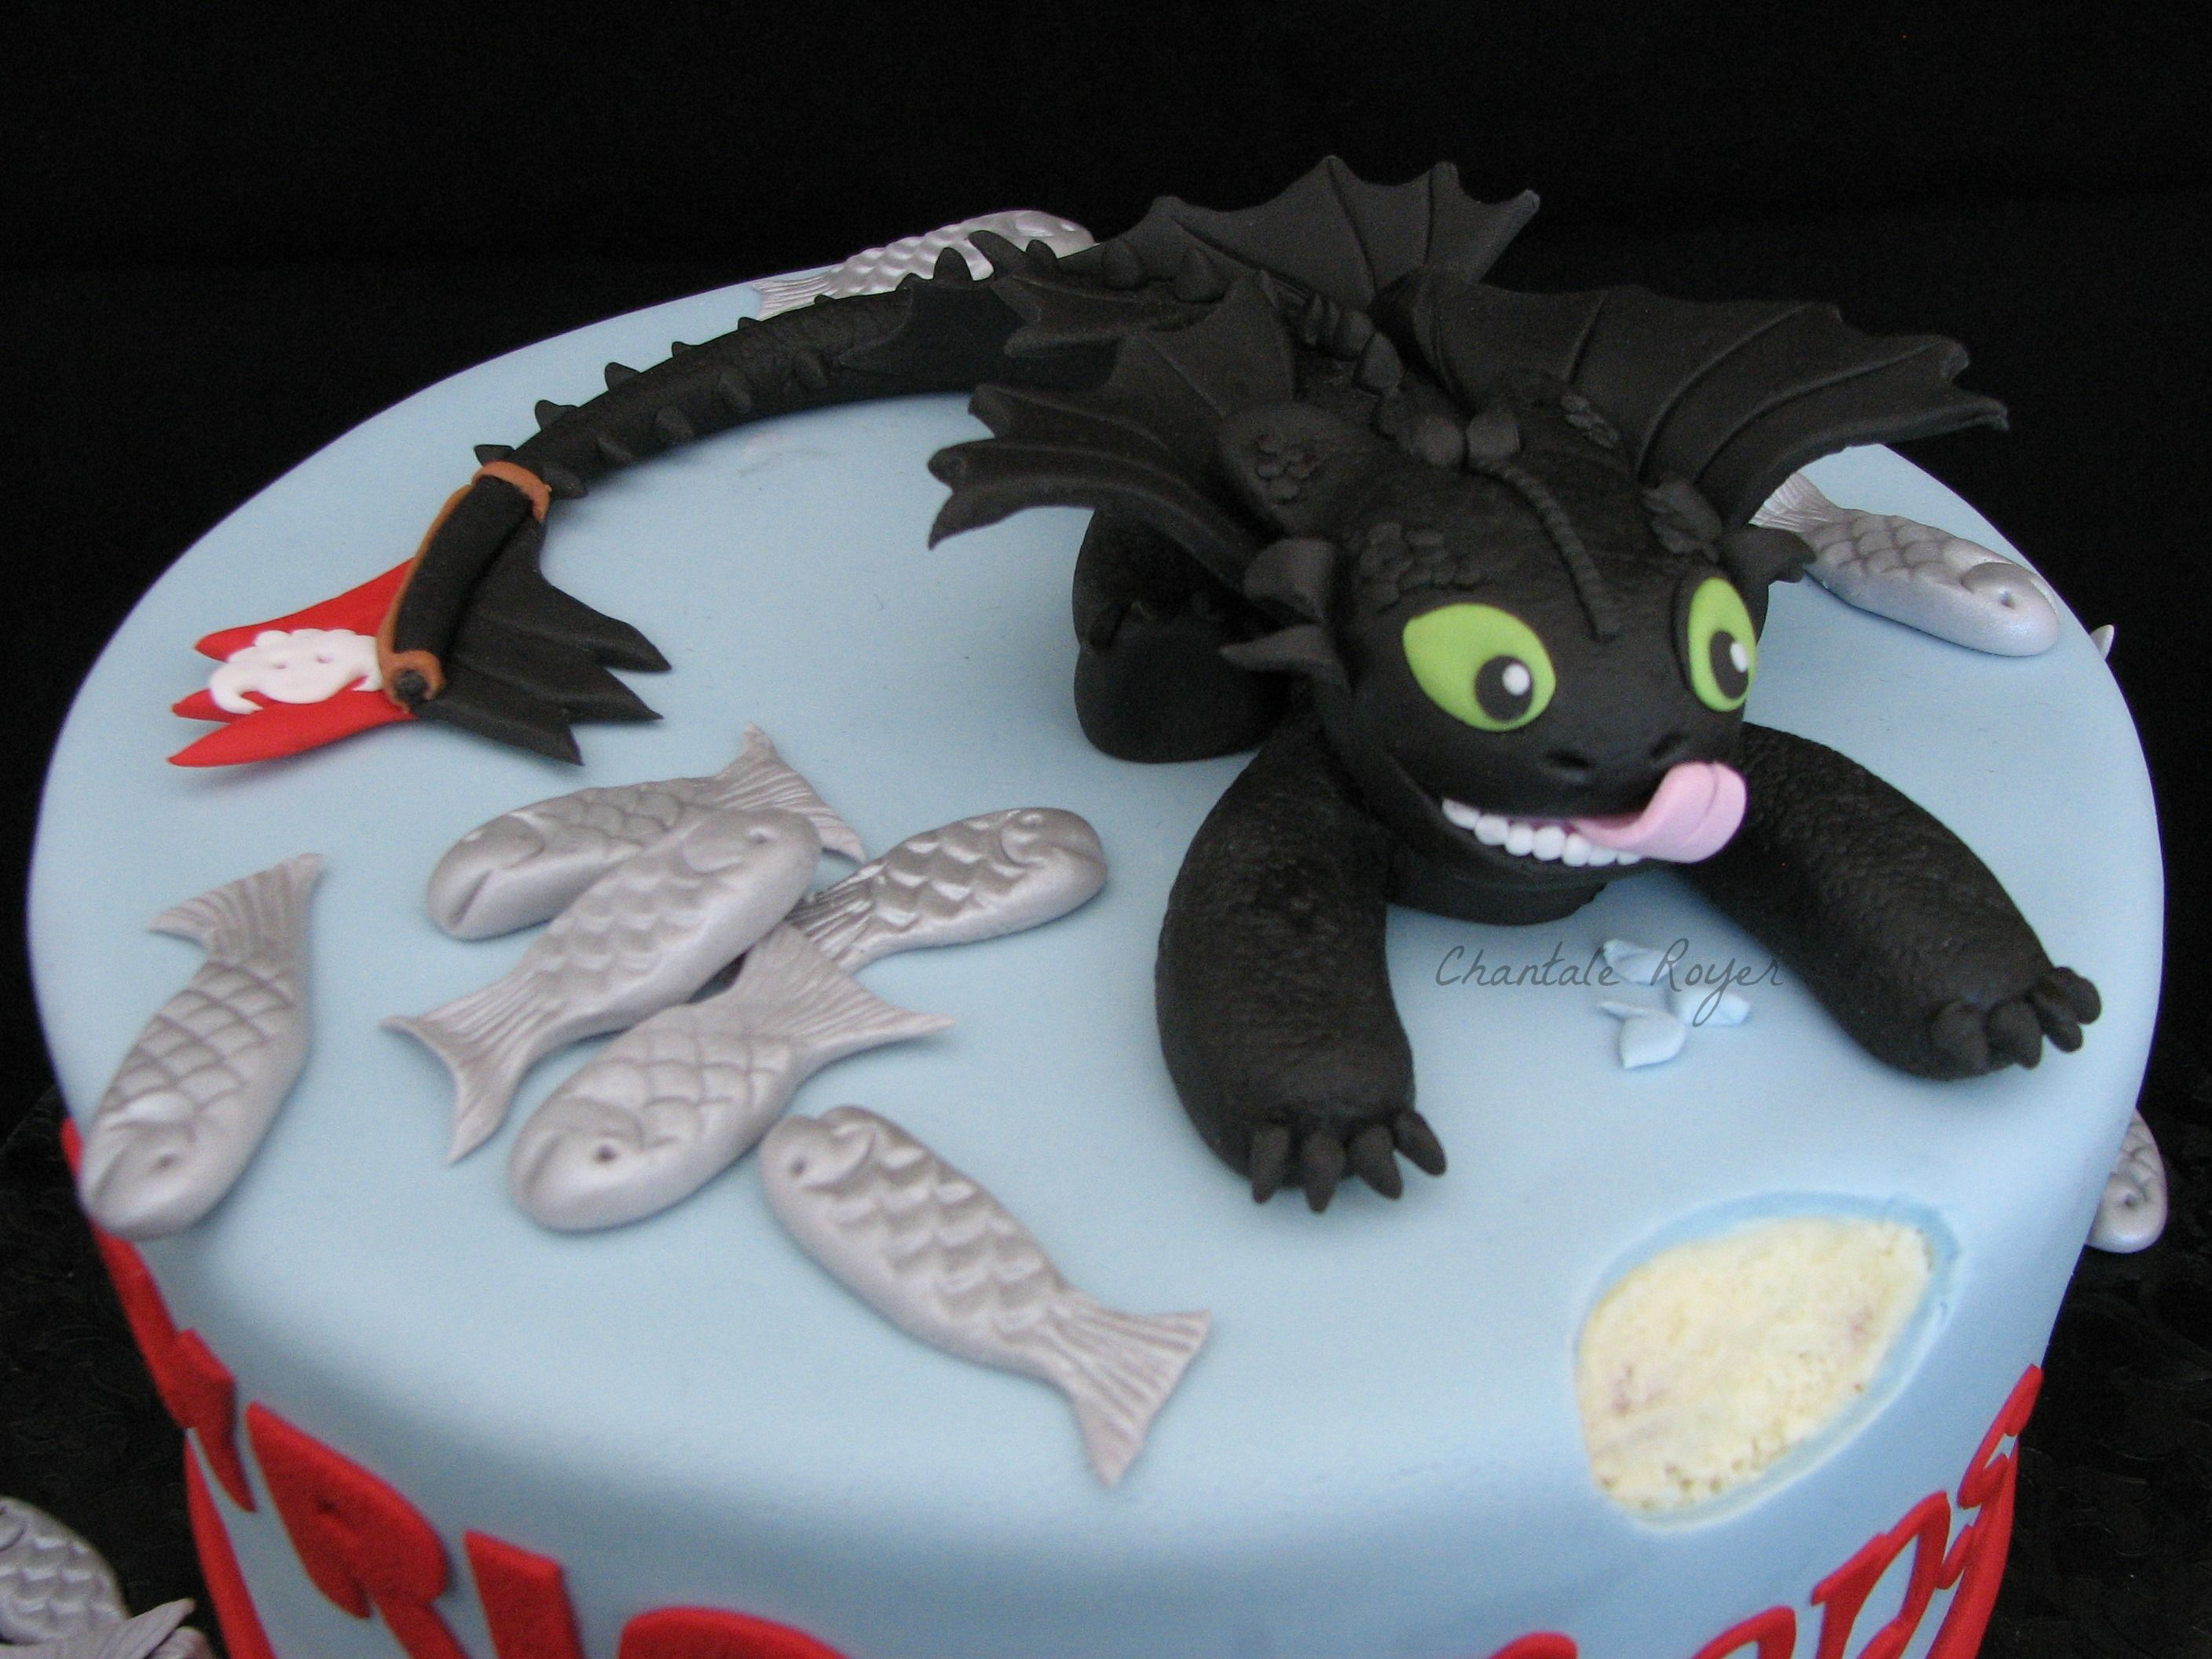 Cake gteau dragon krokmou toothless how to train your dragon cake gteau dragon krokmou toothless how to train your dragon fondant gumpaste ccuart Images